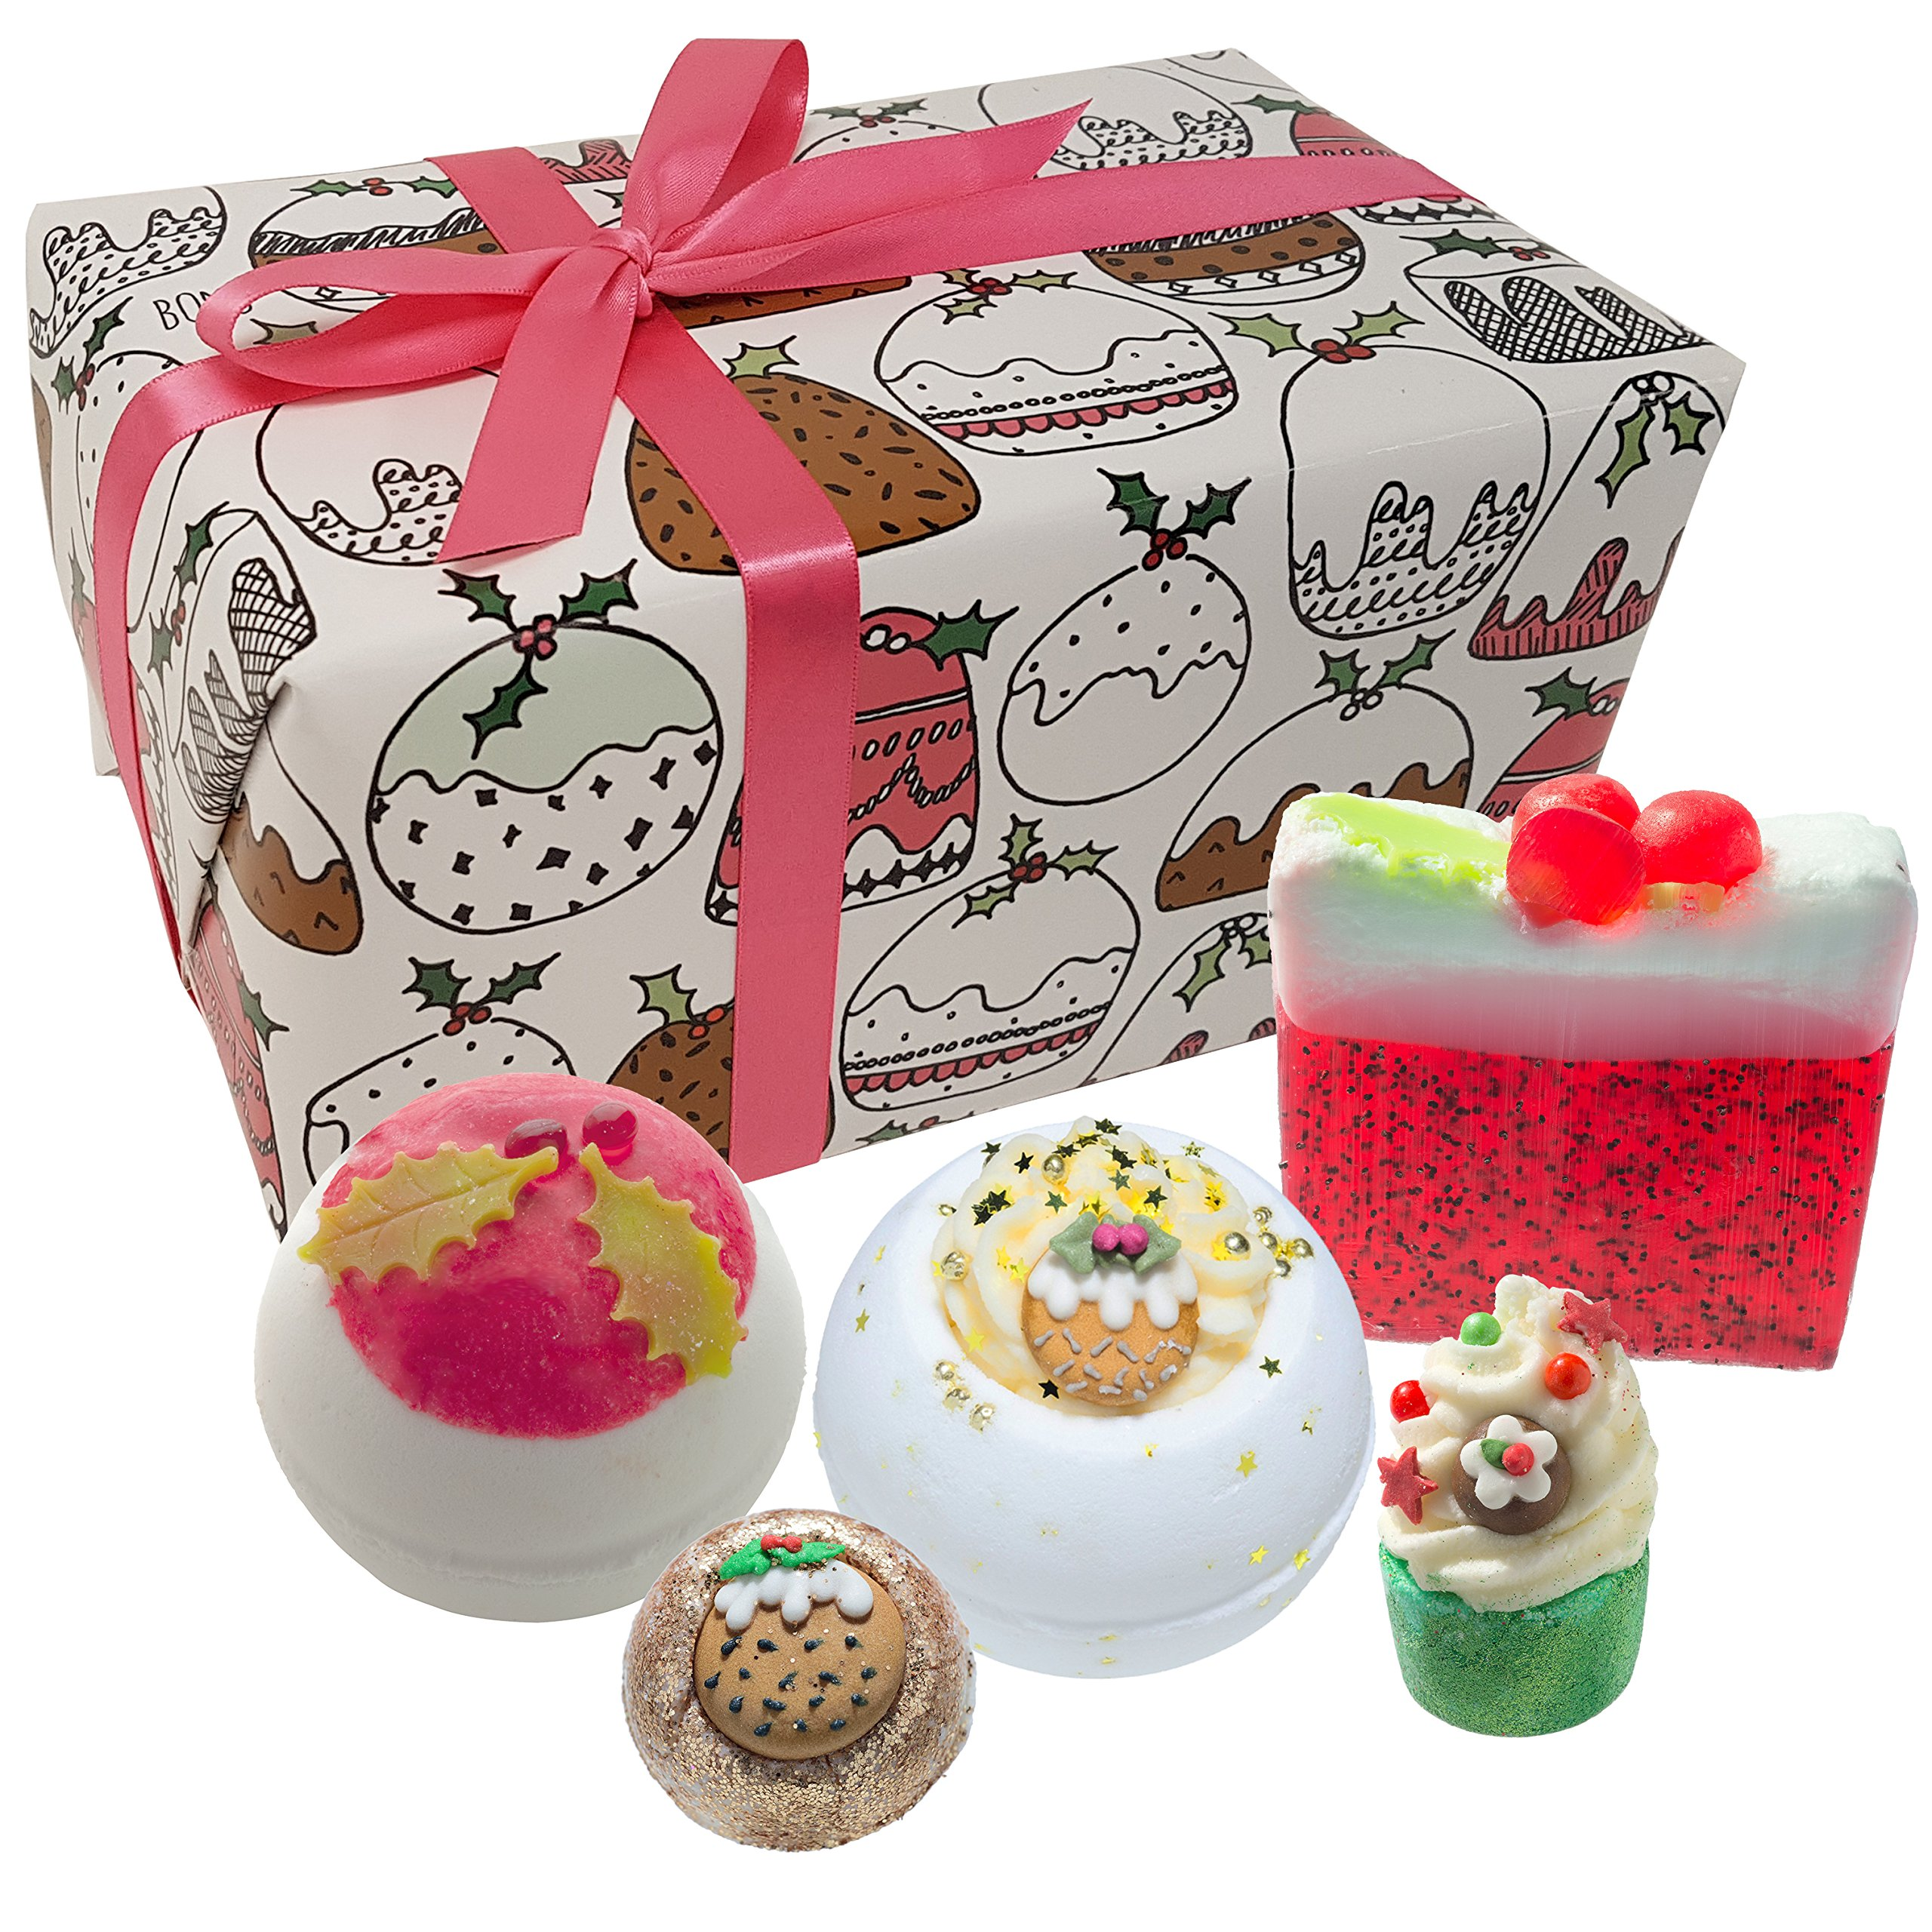 Bomb Cosmetics Figgy Pudding Handmade Wrapped Gift Pack [Contains 5-Pieces], 500g